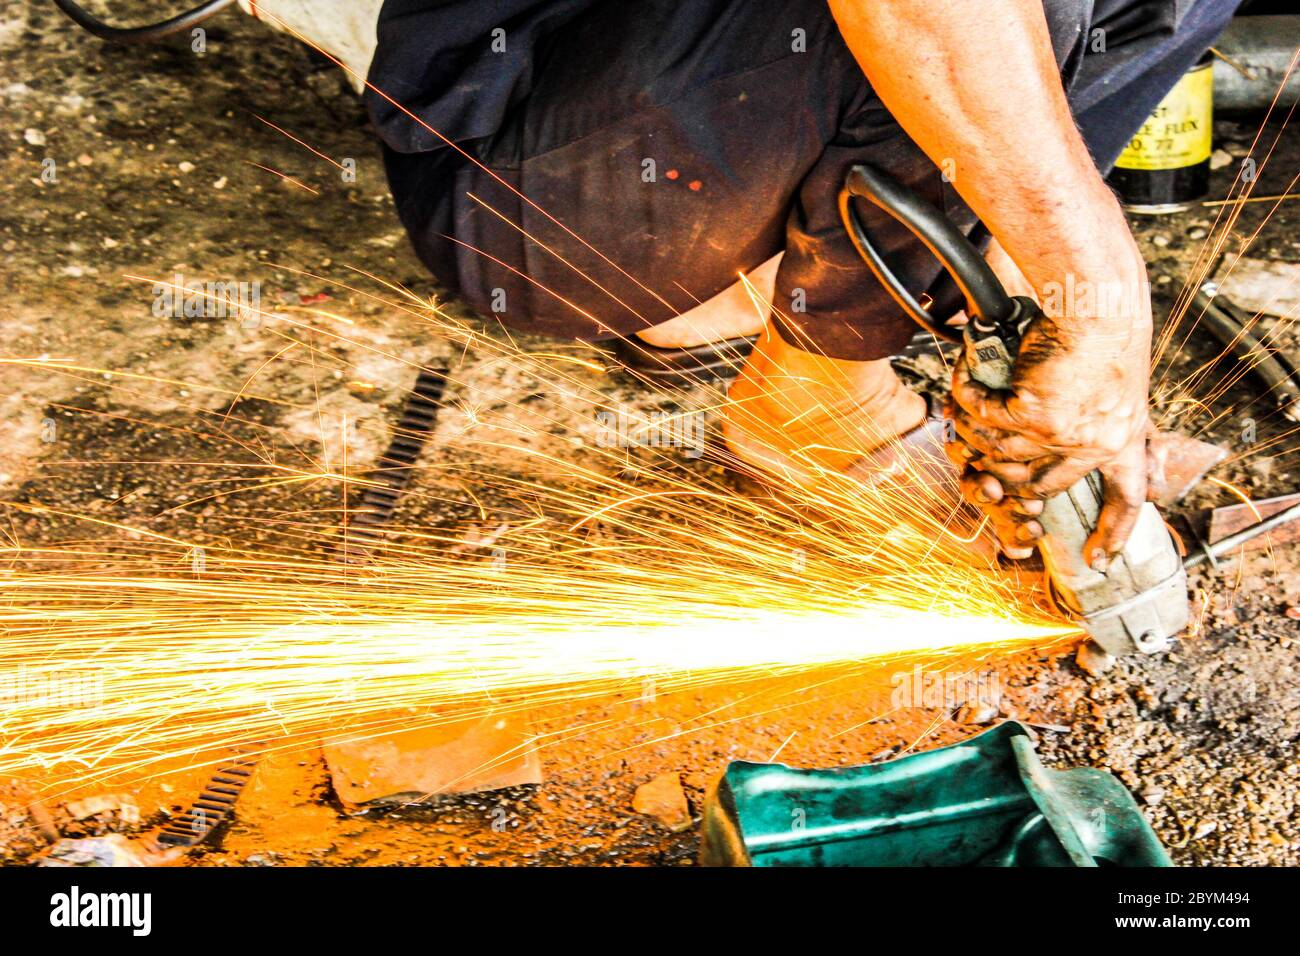 mechanics repairing steel sparks fire light in auto car shop station Stock Photo